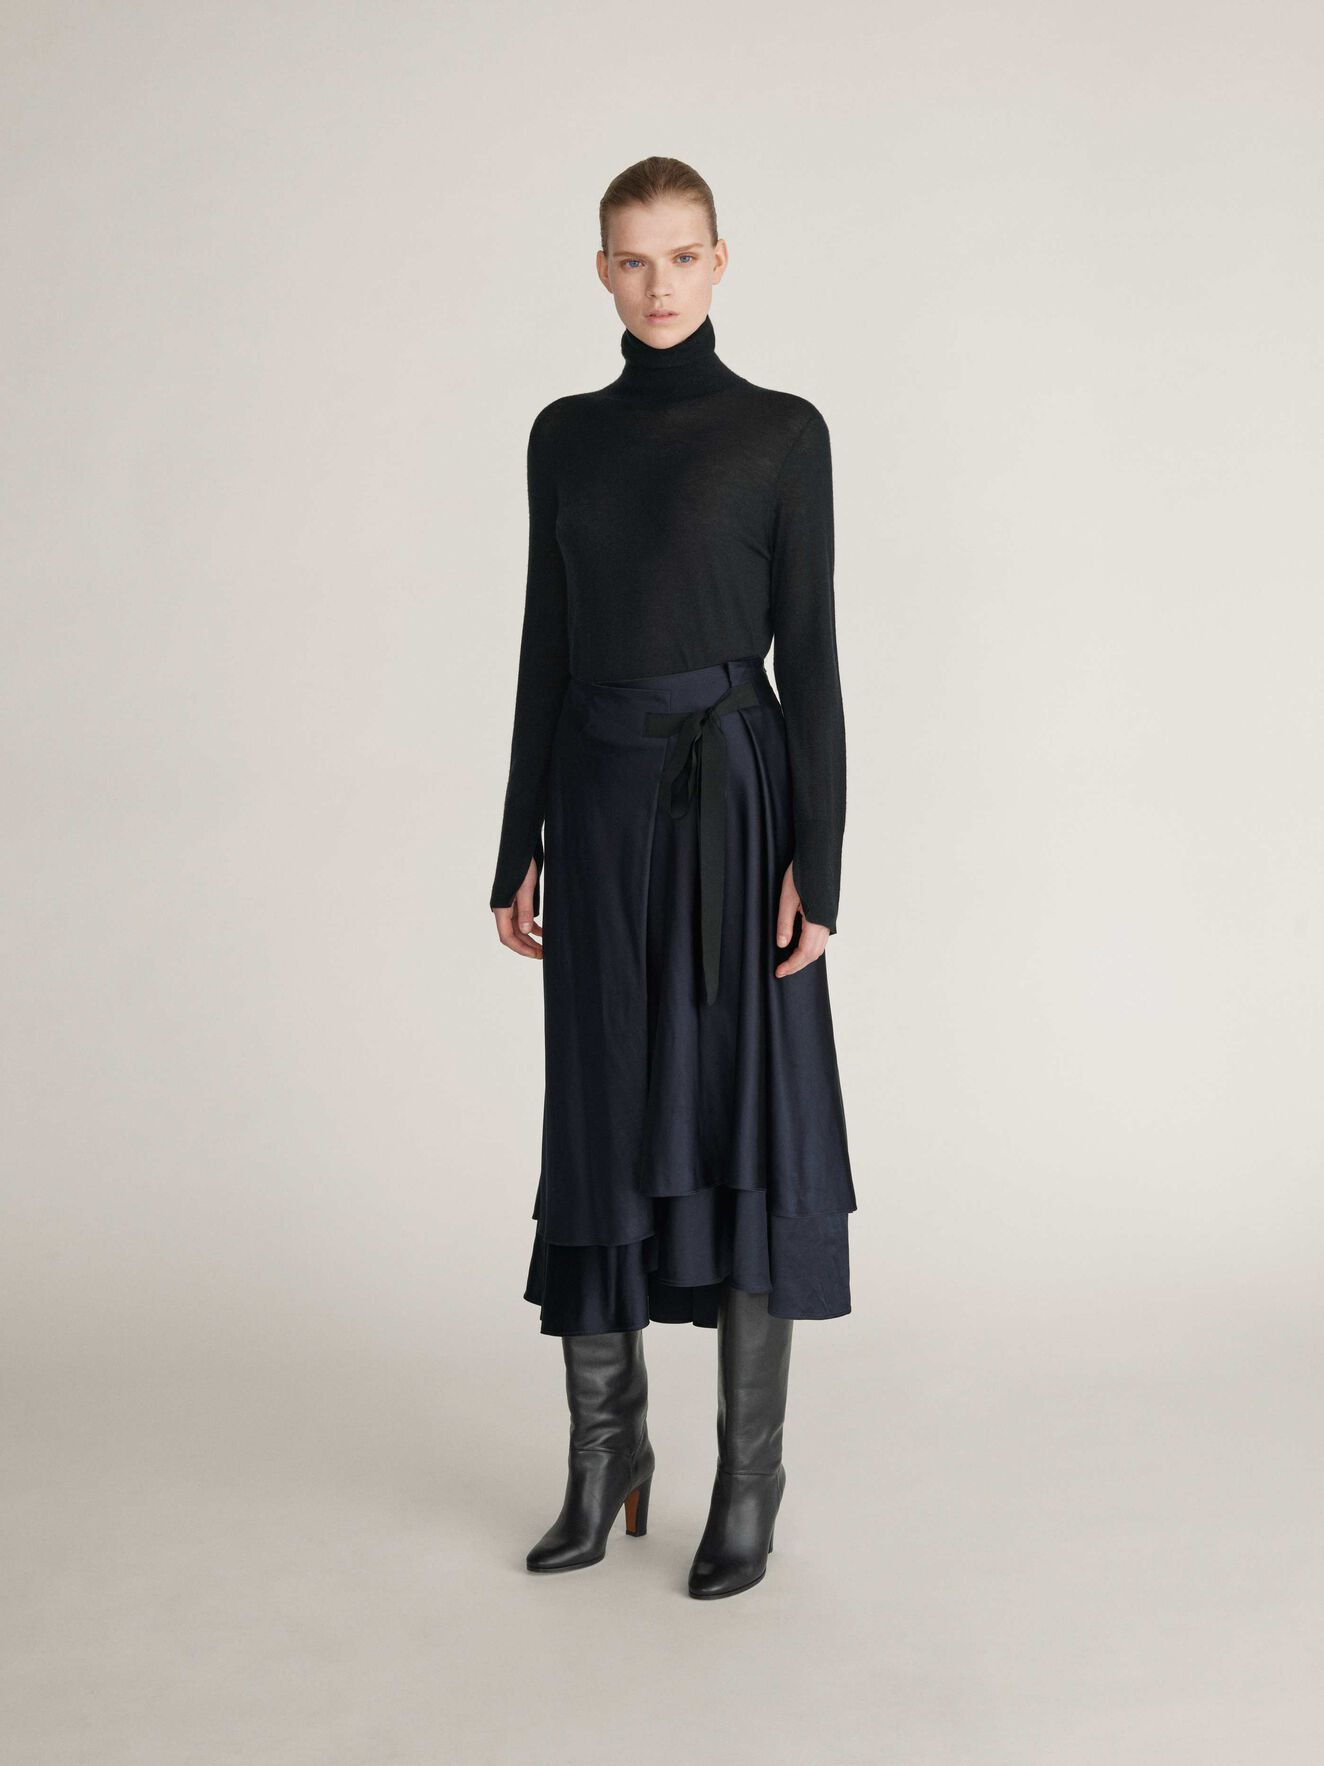 Cabby Skirt in Dark Sea from Tiger of Sweden